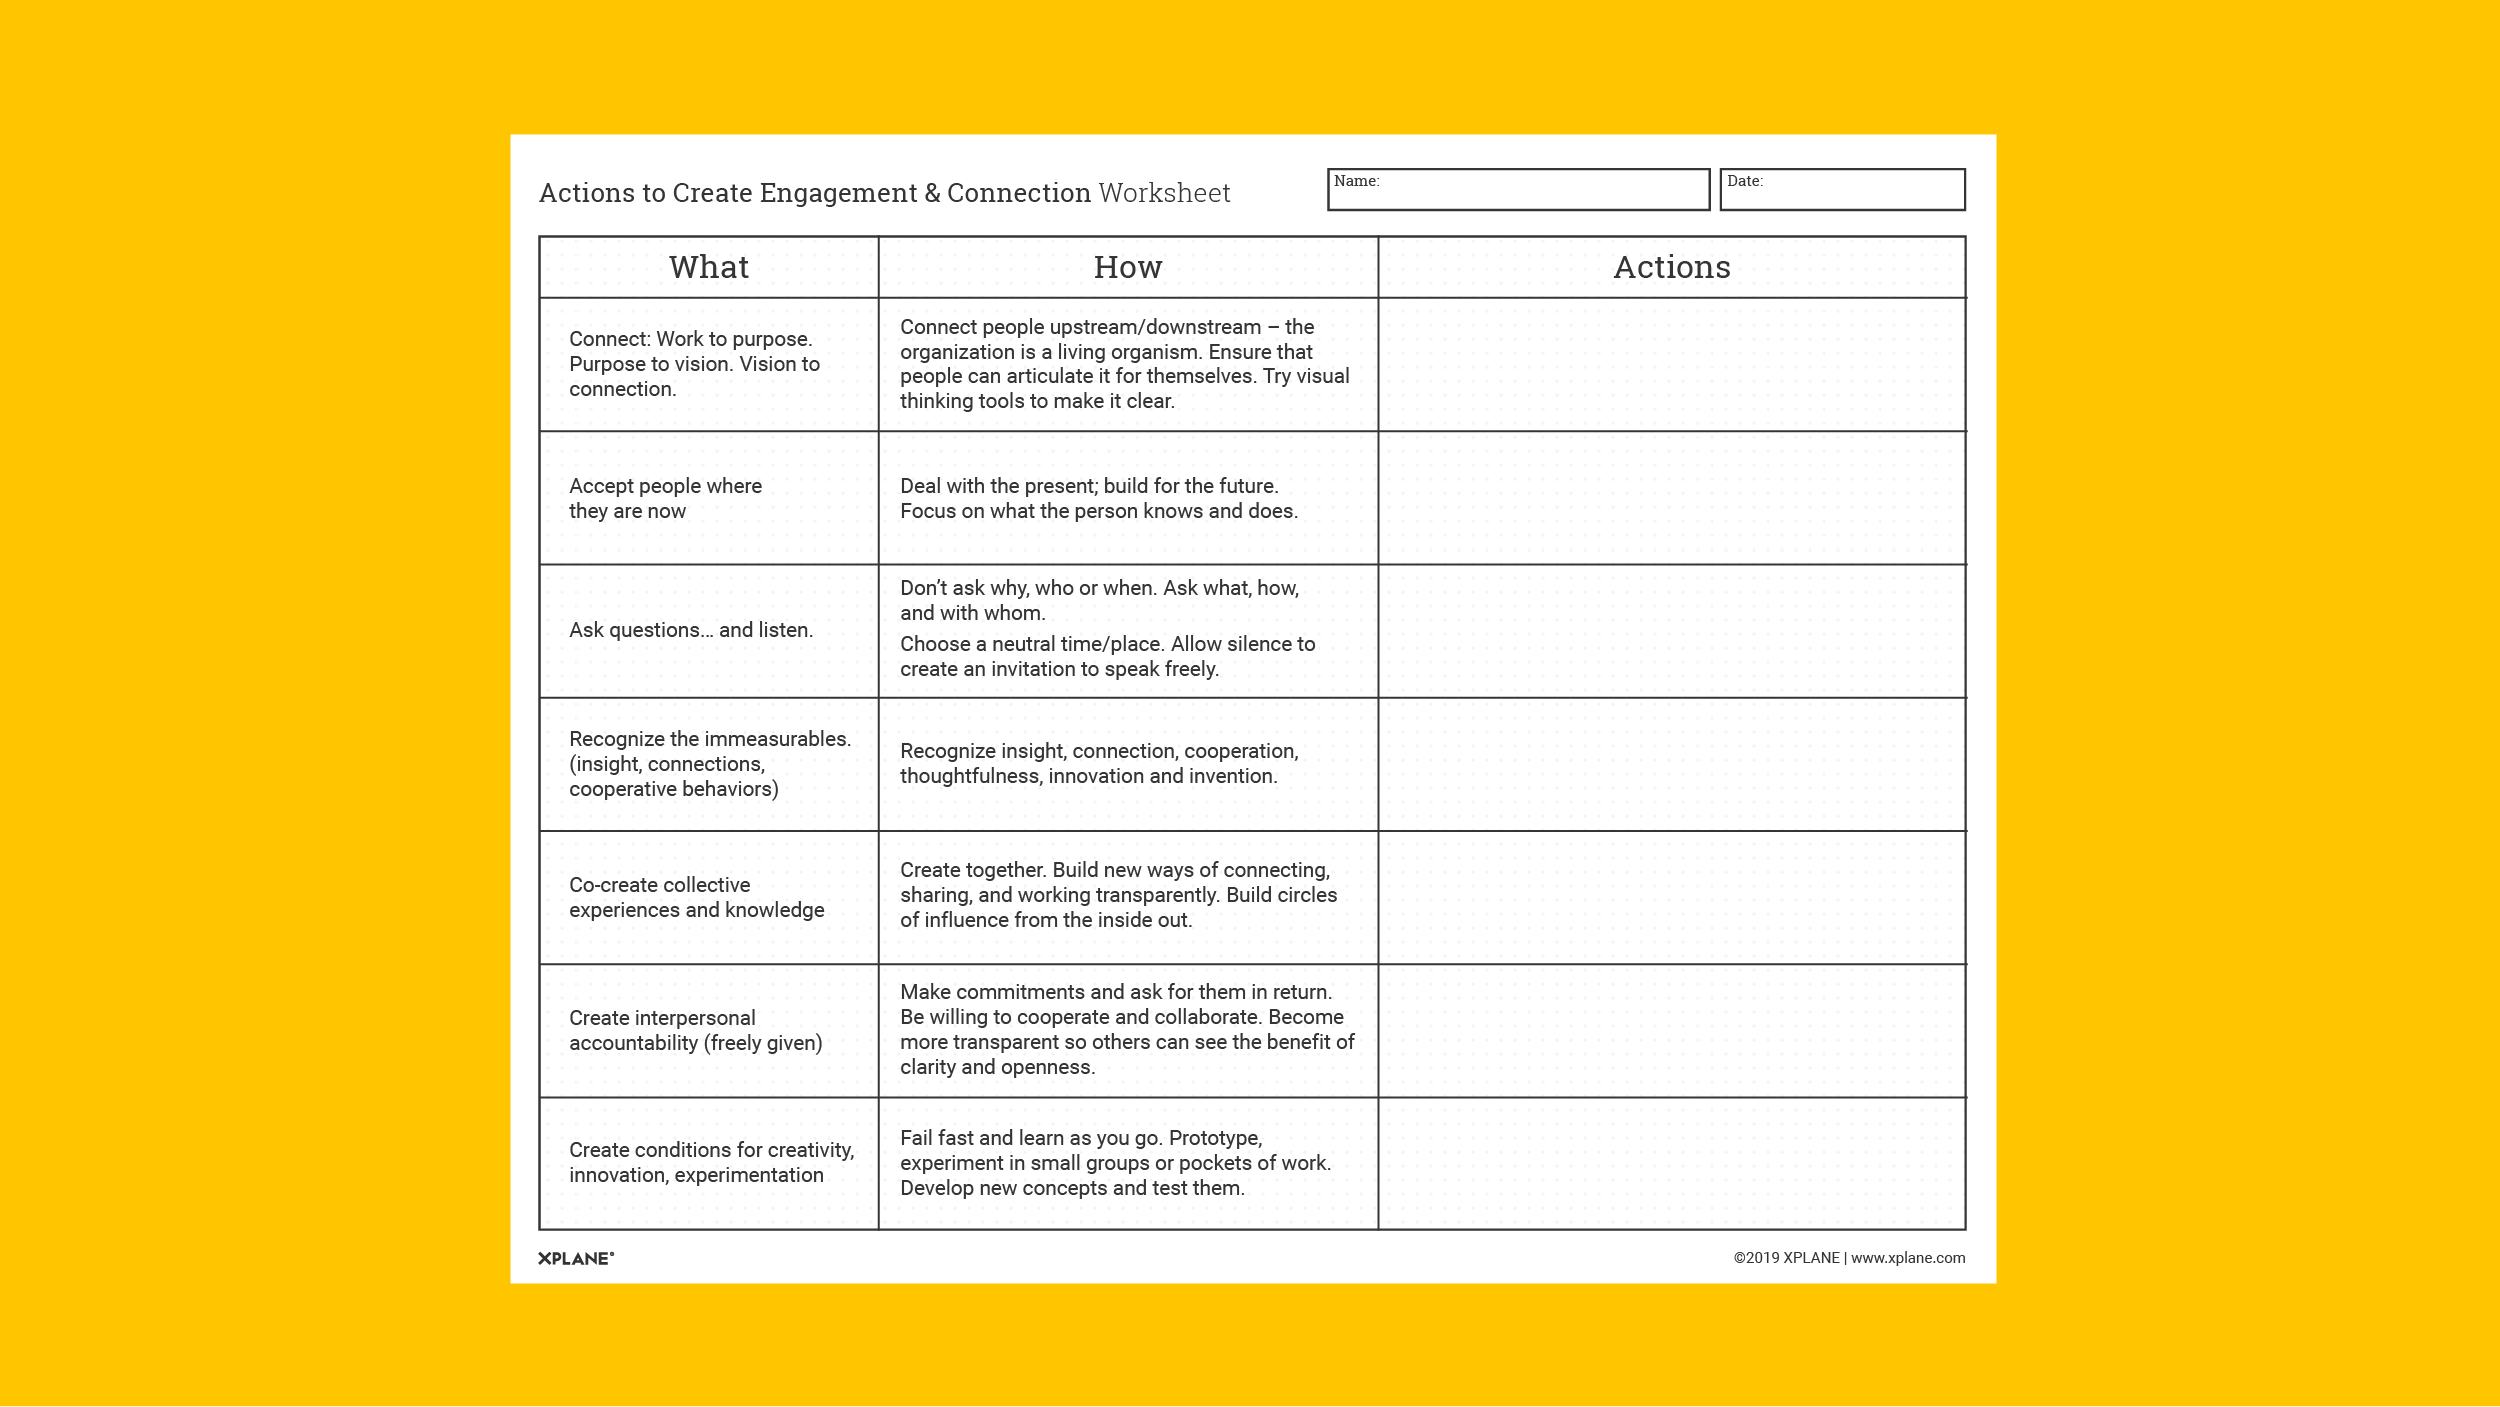 Actions to Create Engagement and Connection Worksheet